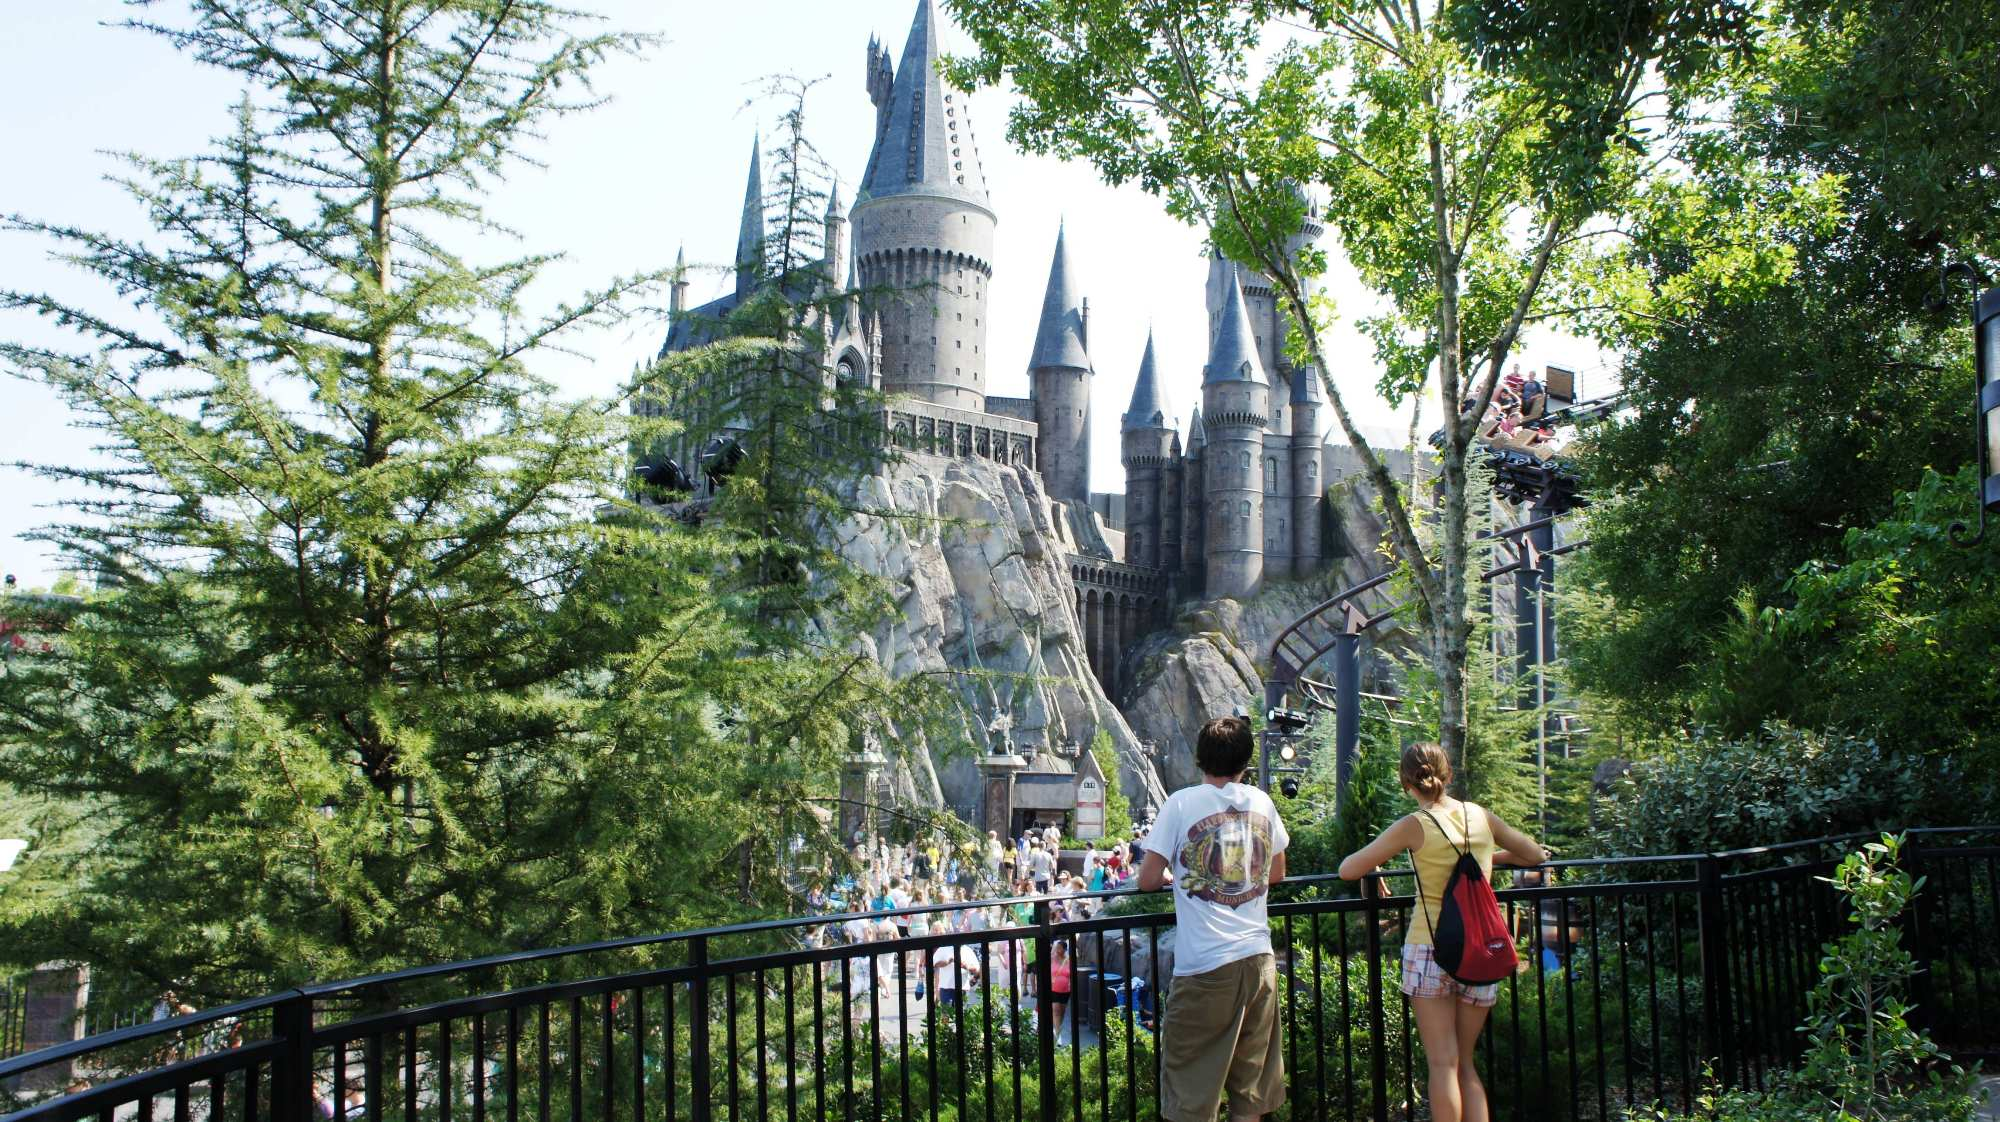 View from Dragon Challenge queue at Universal's Islands of Adventure